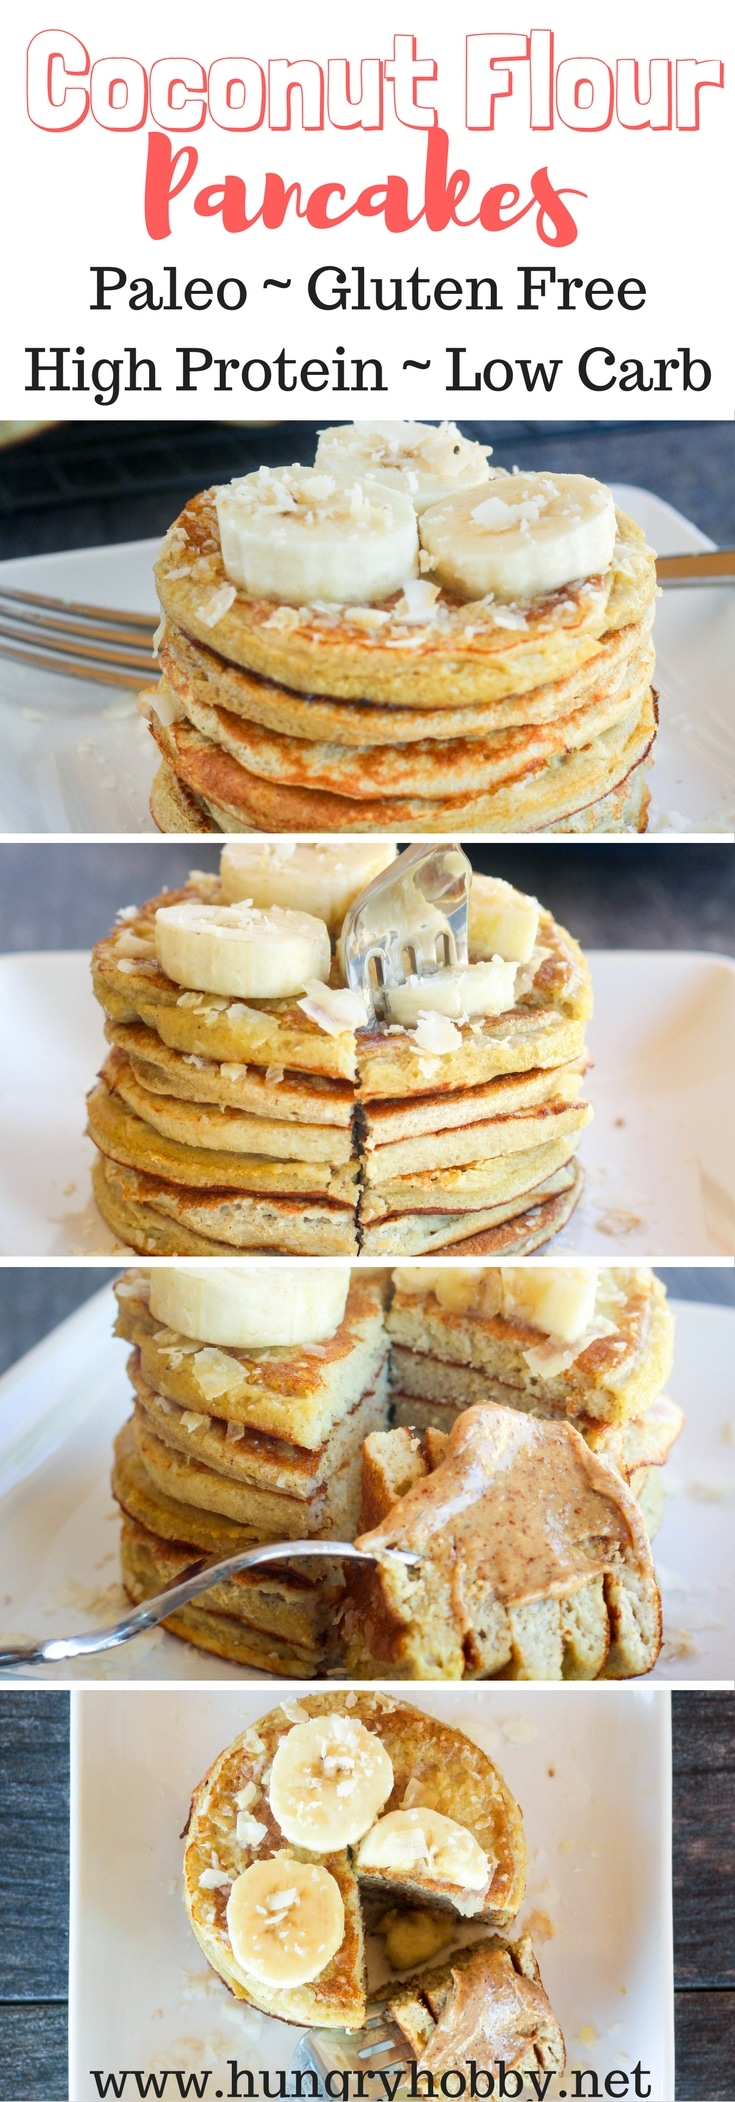 Healthy Coconut Flour Pancakes are gluten free and paleo friendly.  Make a bunch and freeze them ahead for healthy pancakes any day! #glutenfree #paleo #pancakes #hungryhobby #lowcarb #healthy